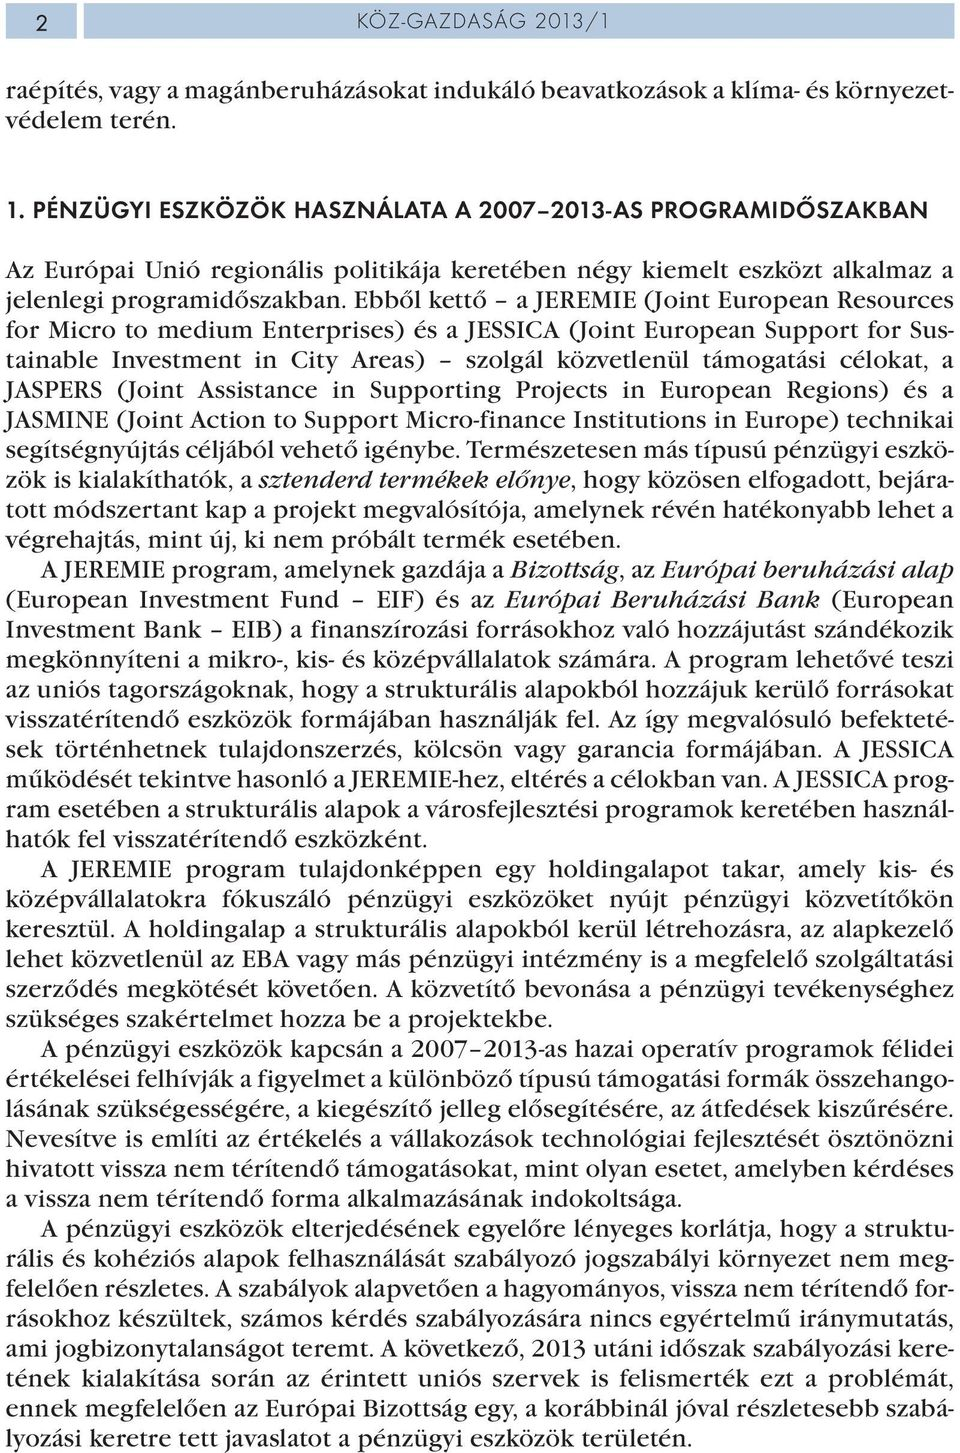 Ebből kettő a JEREMIE (Joint European Resources for Micro to medium Enterprises) és a JESSICA (Joint European Support for Sustainable Investment in City Areas) szolgál közvetlenül támogatási célokat,